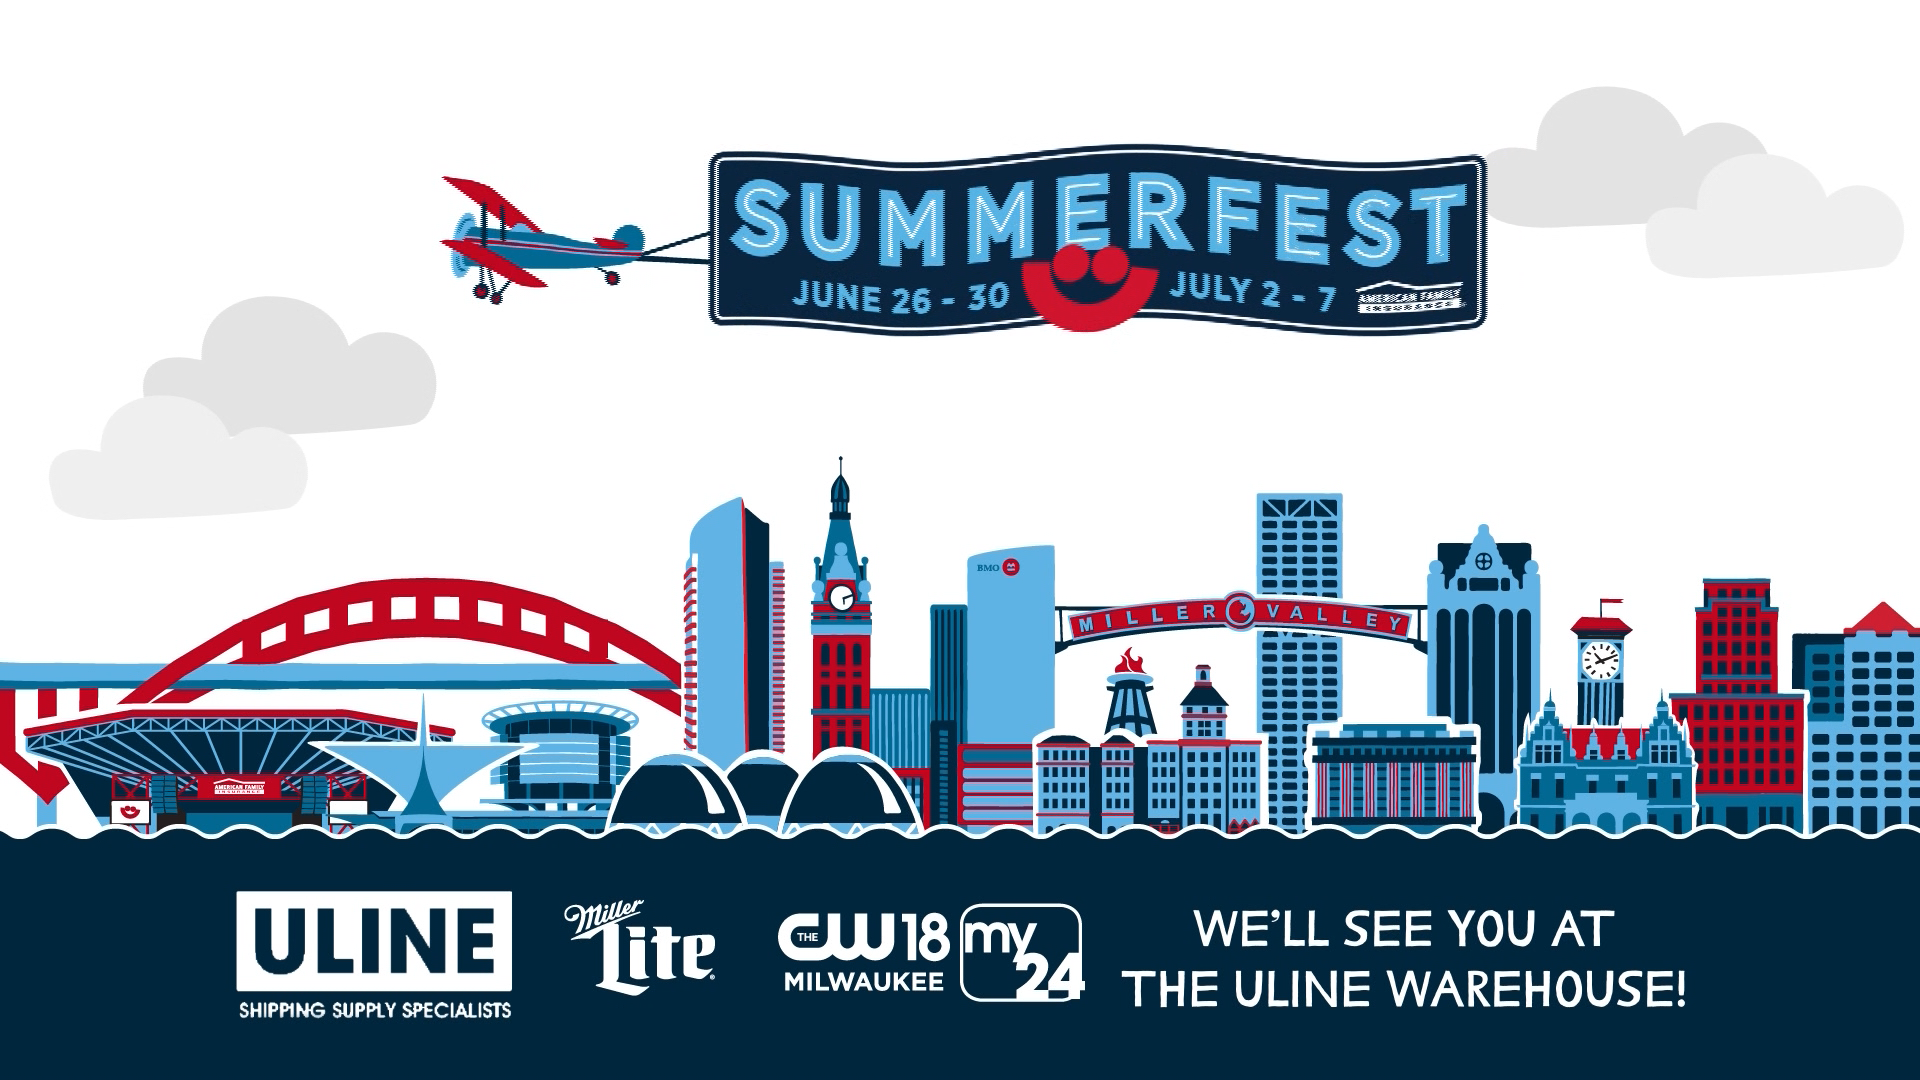 Join us at the Uline Warehouse with Miller Lite, CW18 & My24<p></p>